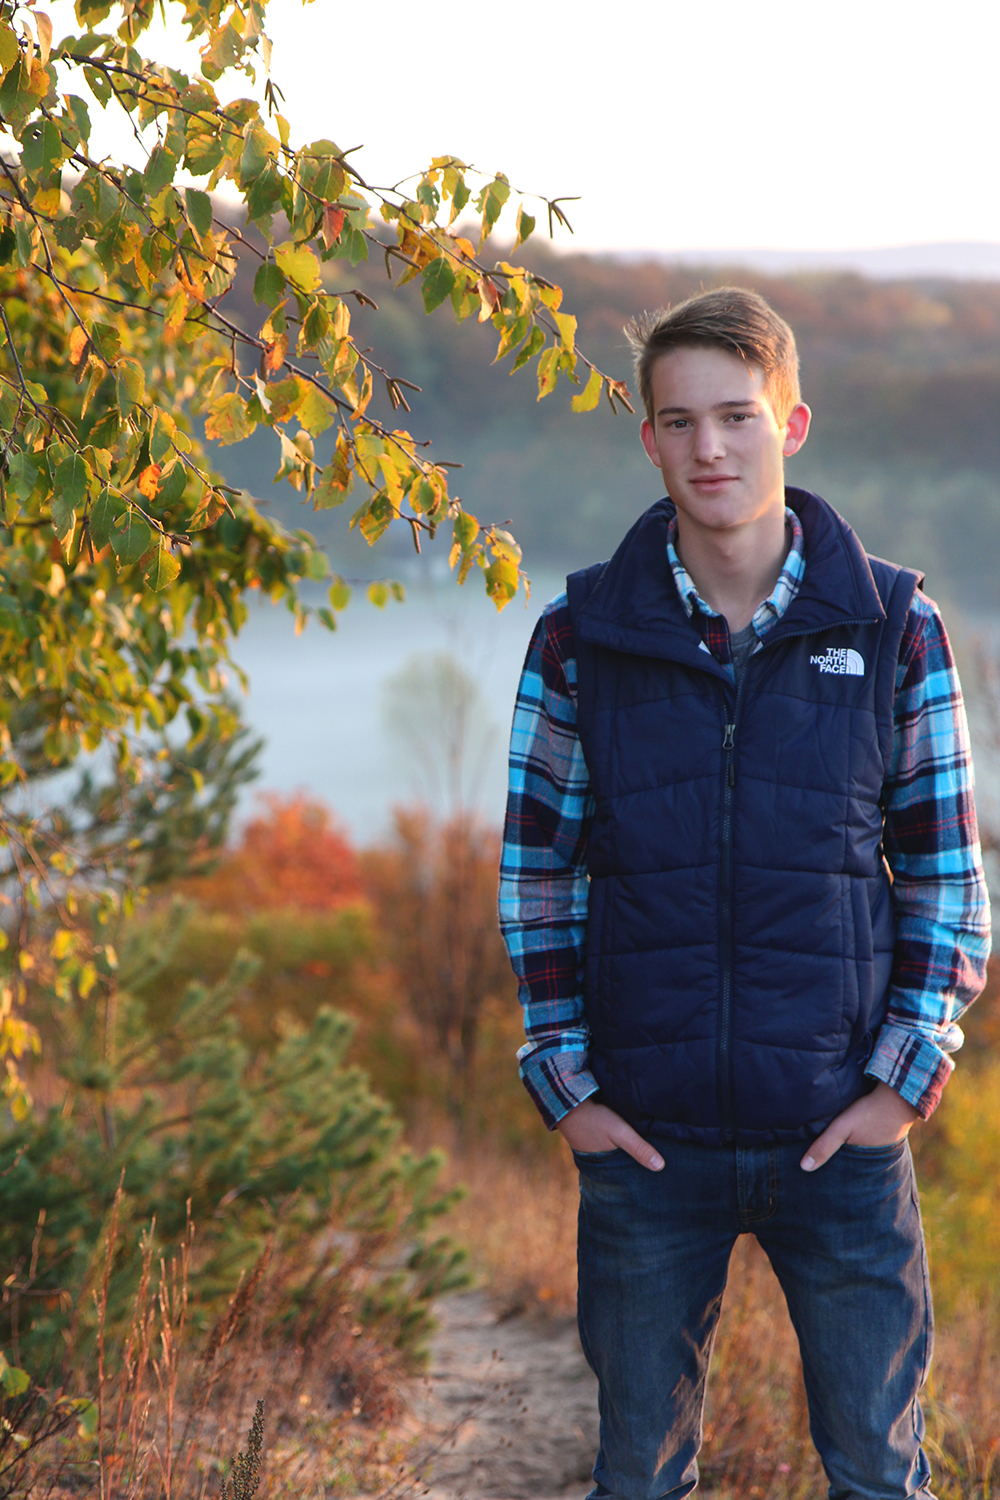 Cam Kubit Cameron Kubit fall senior portrait Northern Michigan senior picture Sleeping Bear Dunes National Lakeshore Treat Farm Aubrey Ann Parker Photography